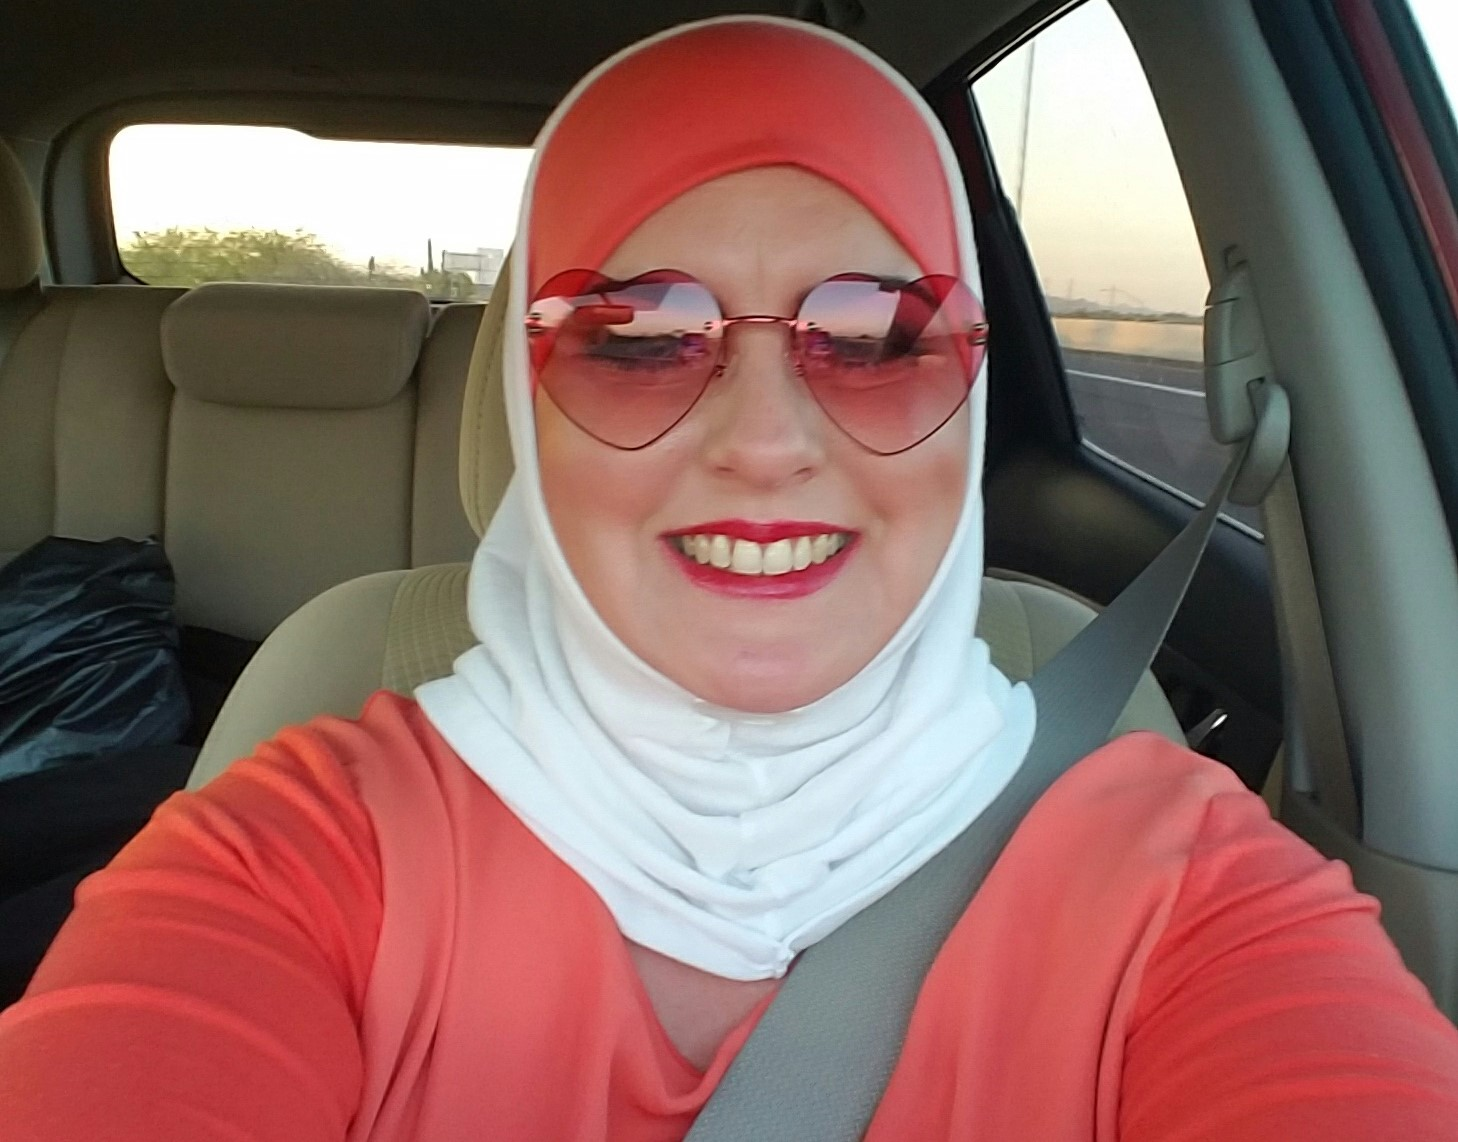 gila muslim women dating site Meet arizona muslims on lovehabibi - the number one place on the web for connecting with muslims and islamically-minded people in arizona.